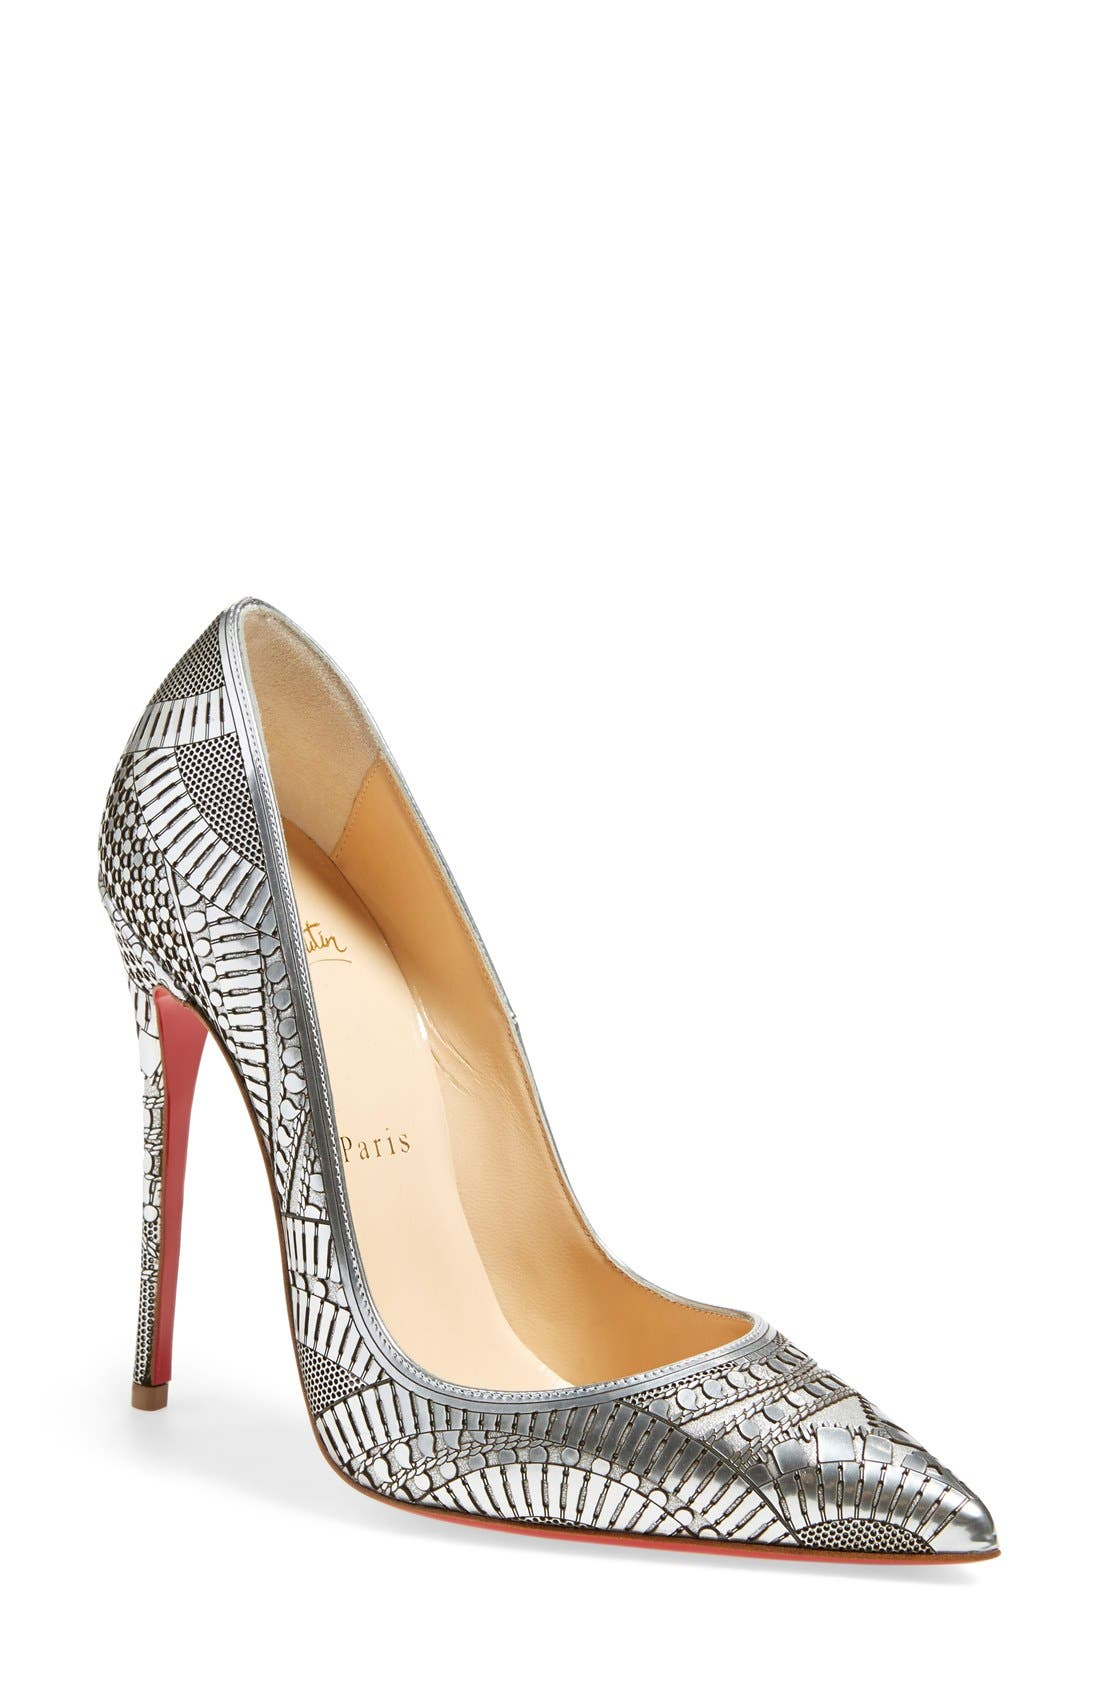 Alternate Image 1 Selected - Christian Louboutin 'Kristali' Laser Cut Pointy Toe Pump